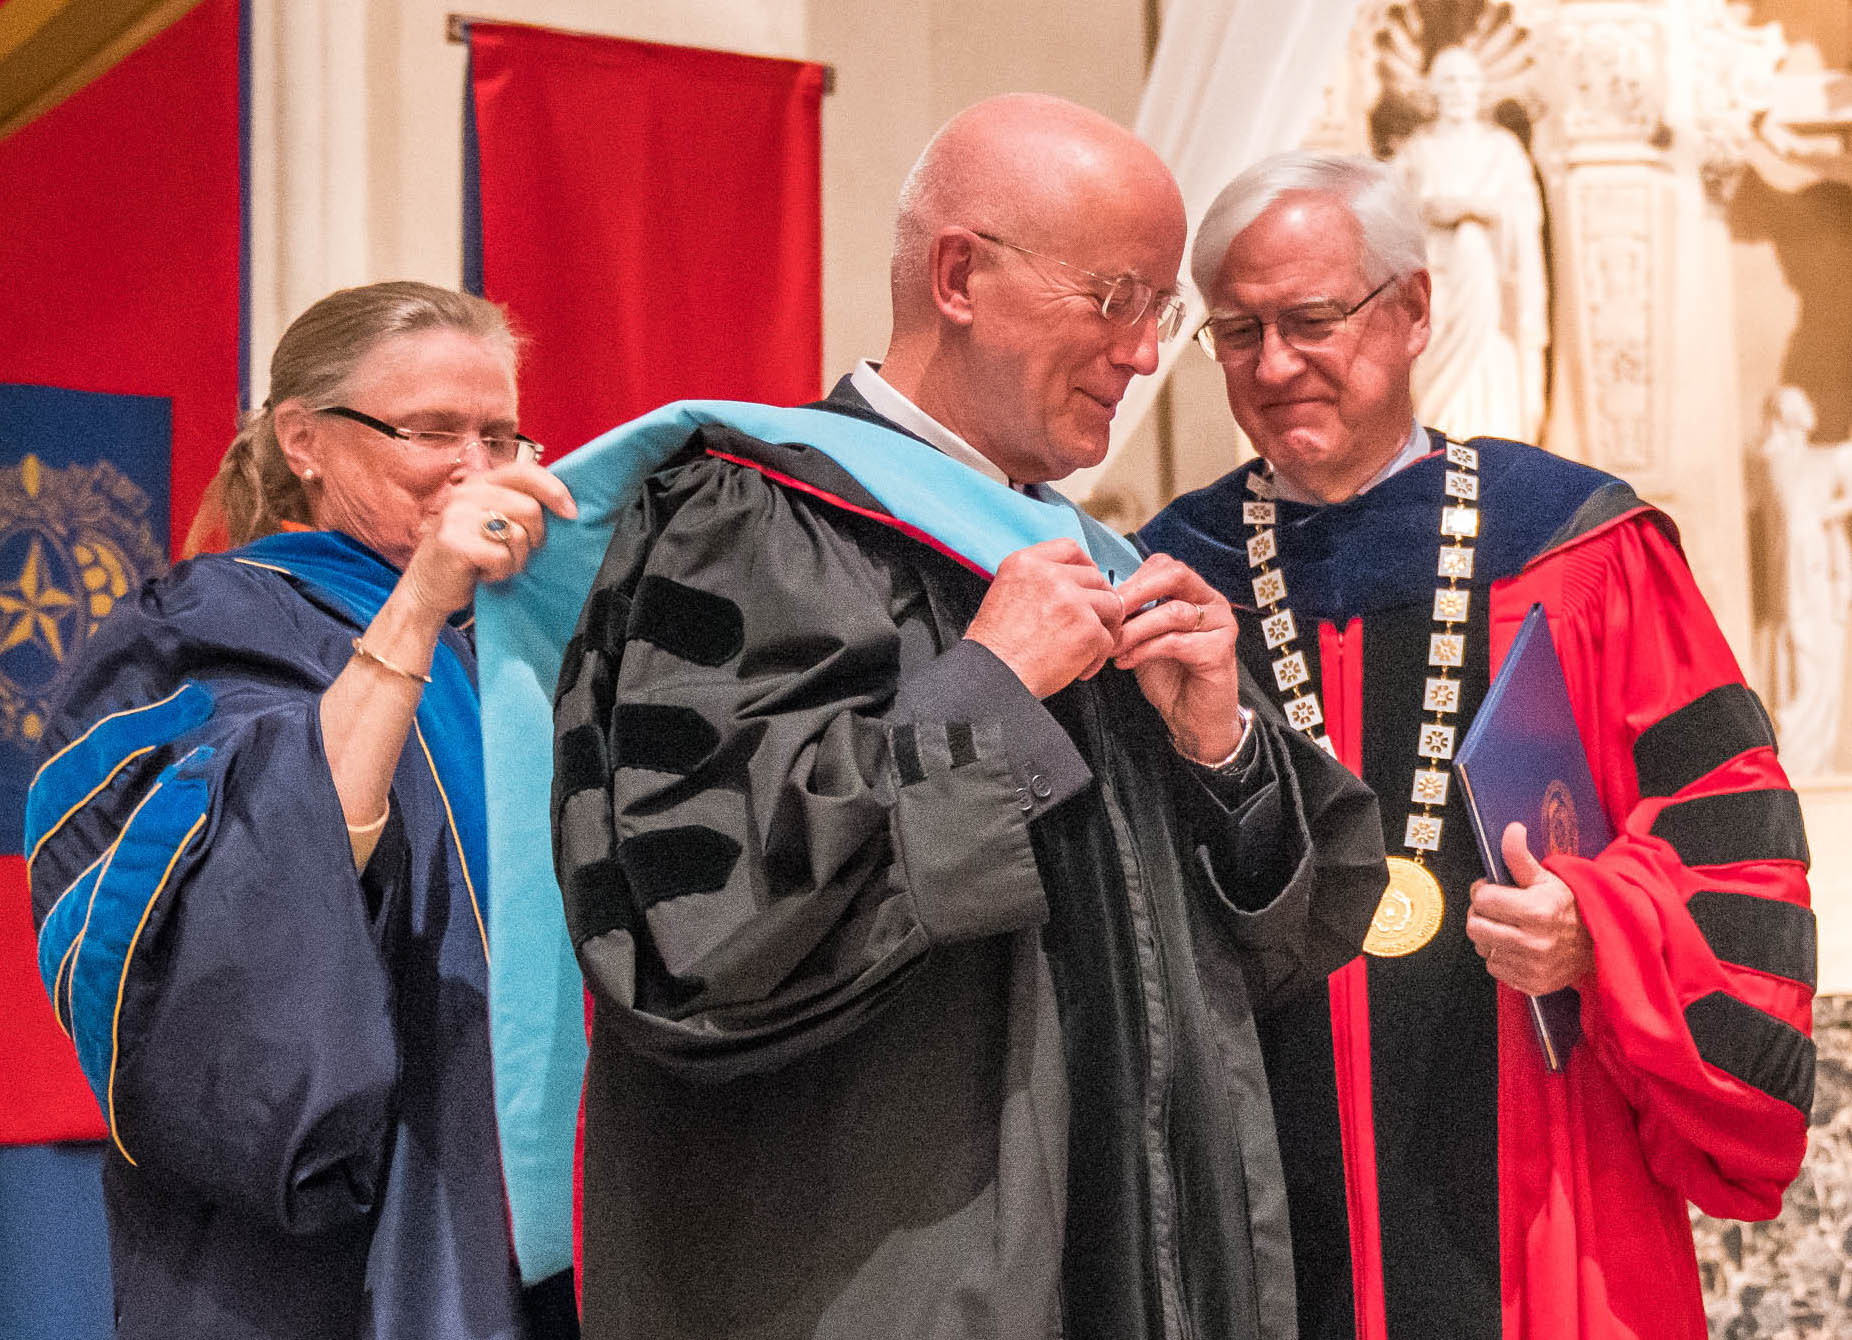 2017 Convocation Honoree Brother Peter Bray, FSC (center) with Saint Mary's President James Donahue and Vice President for Mission Carole Swain.